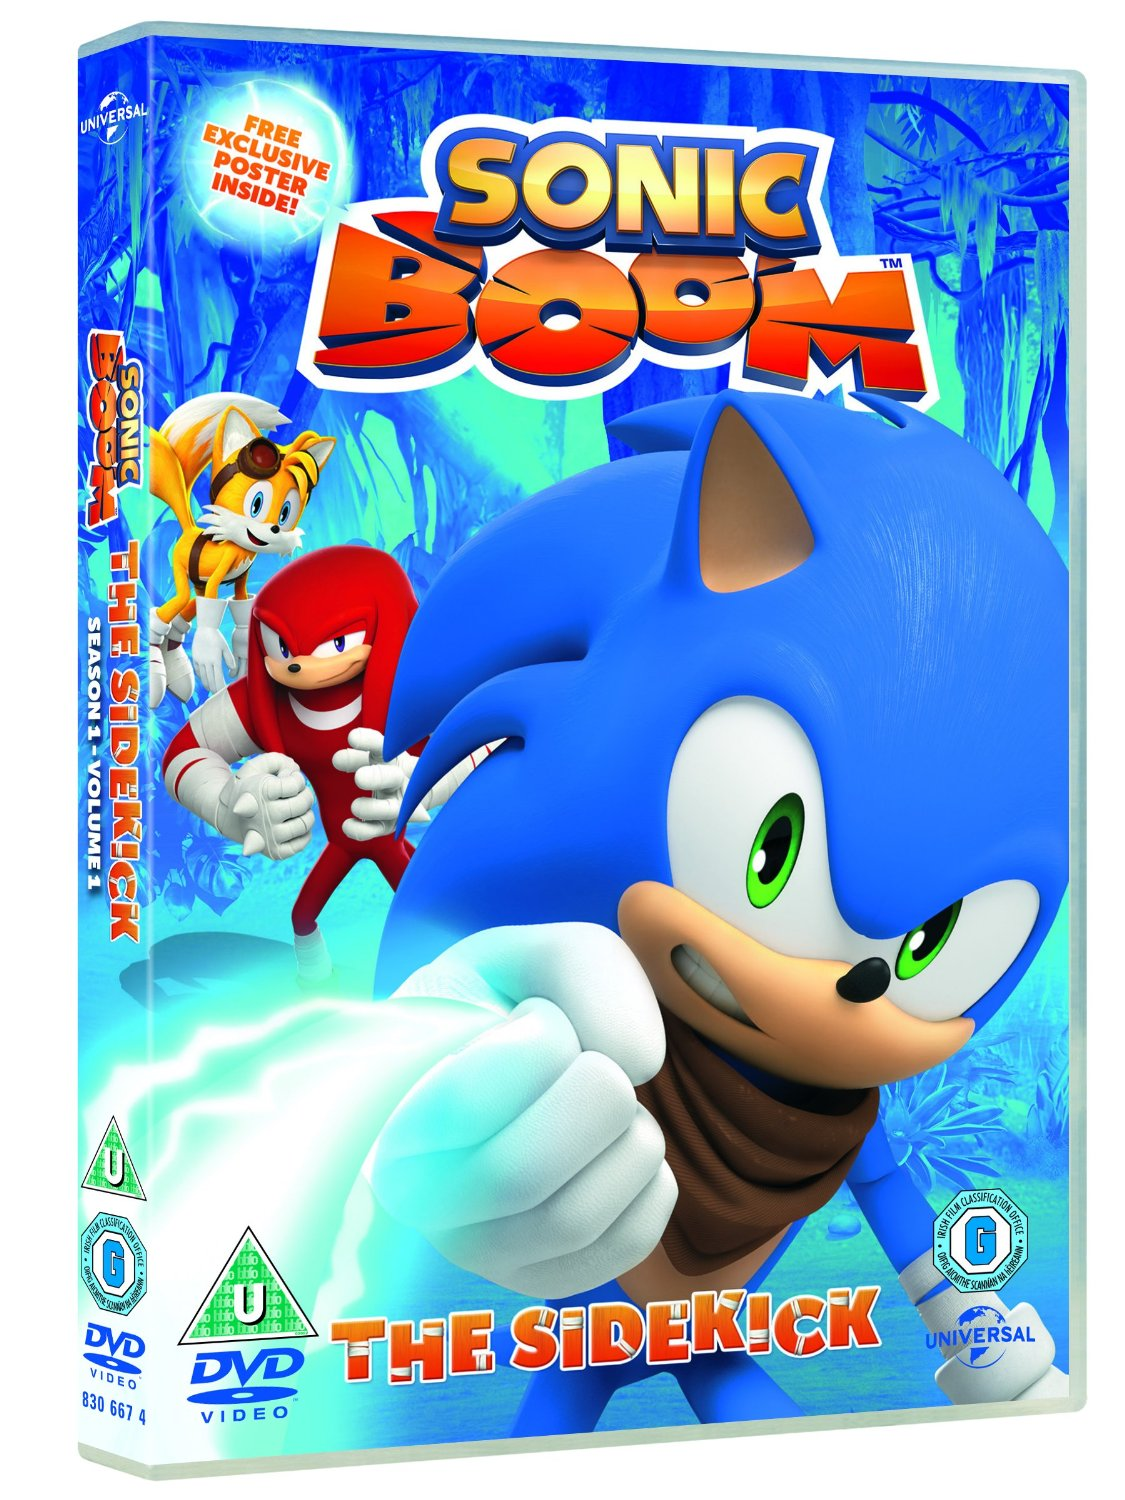 Sonic Boom: The Sidekick now available on DVD, iTunes in UK